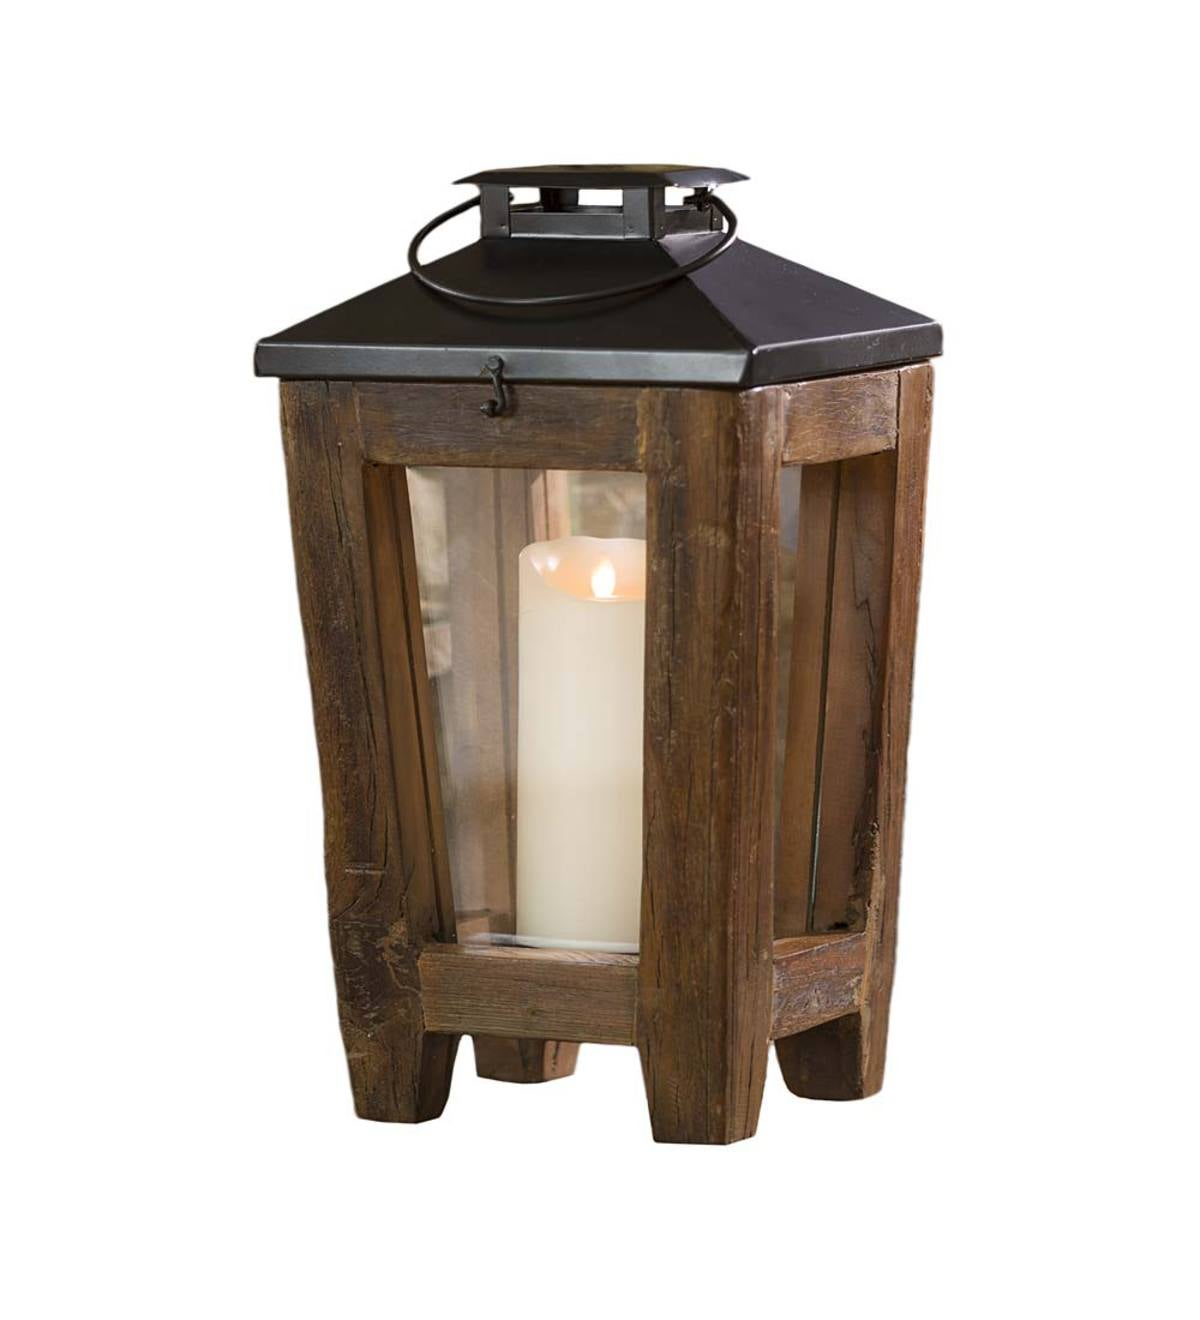 Small Reclaimed Wood and Metal Lantern